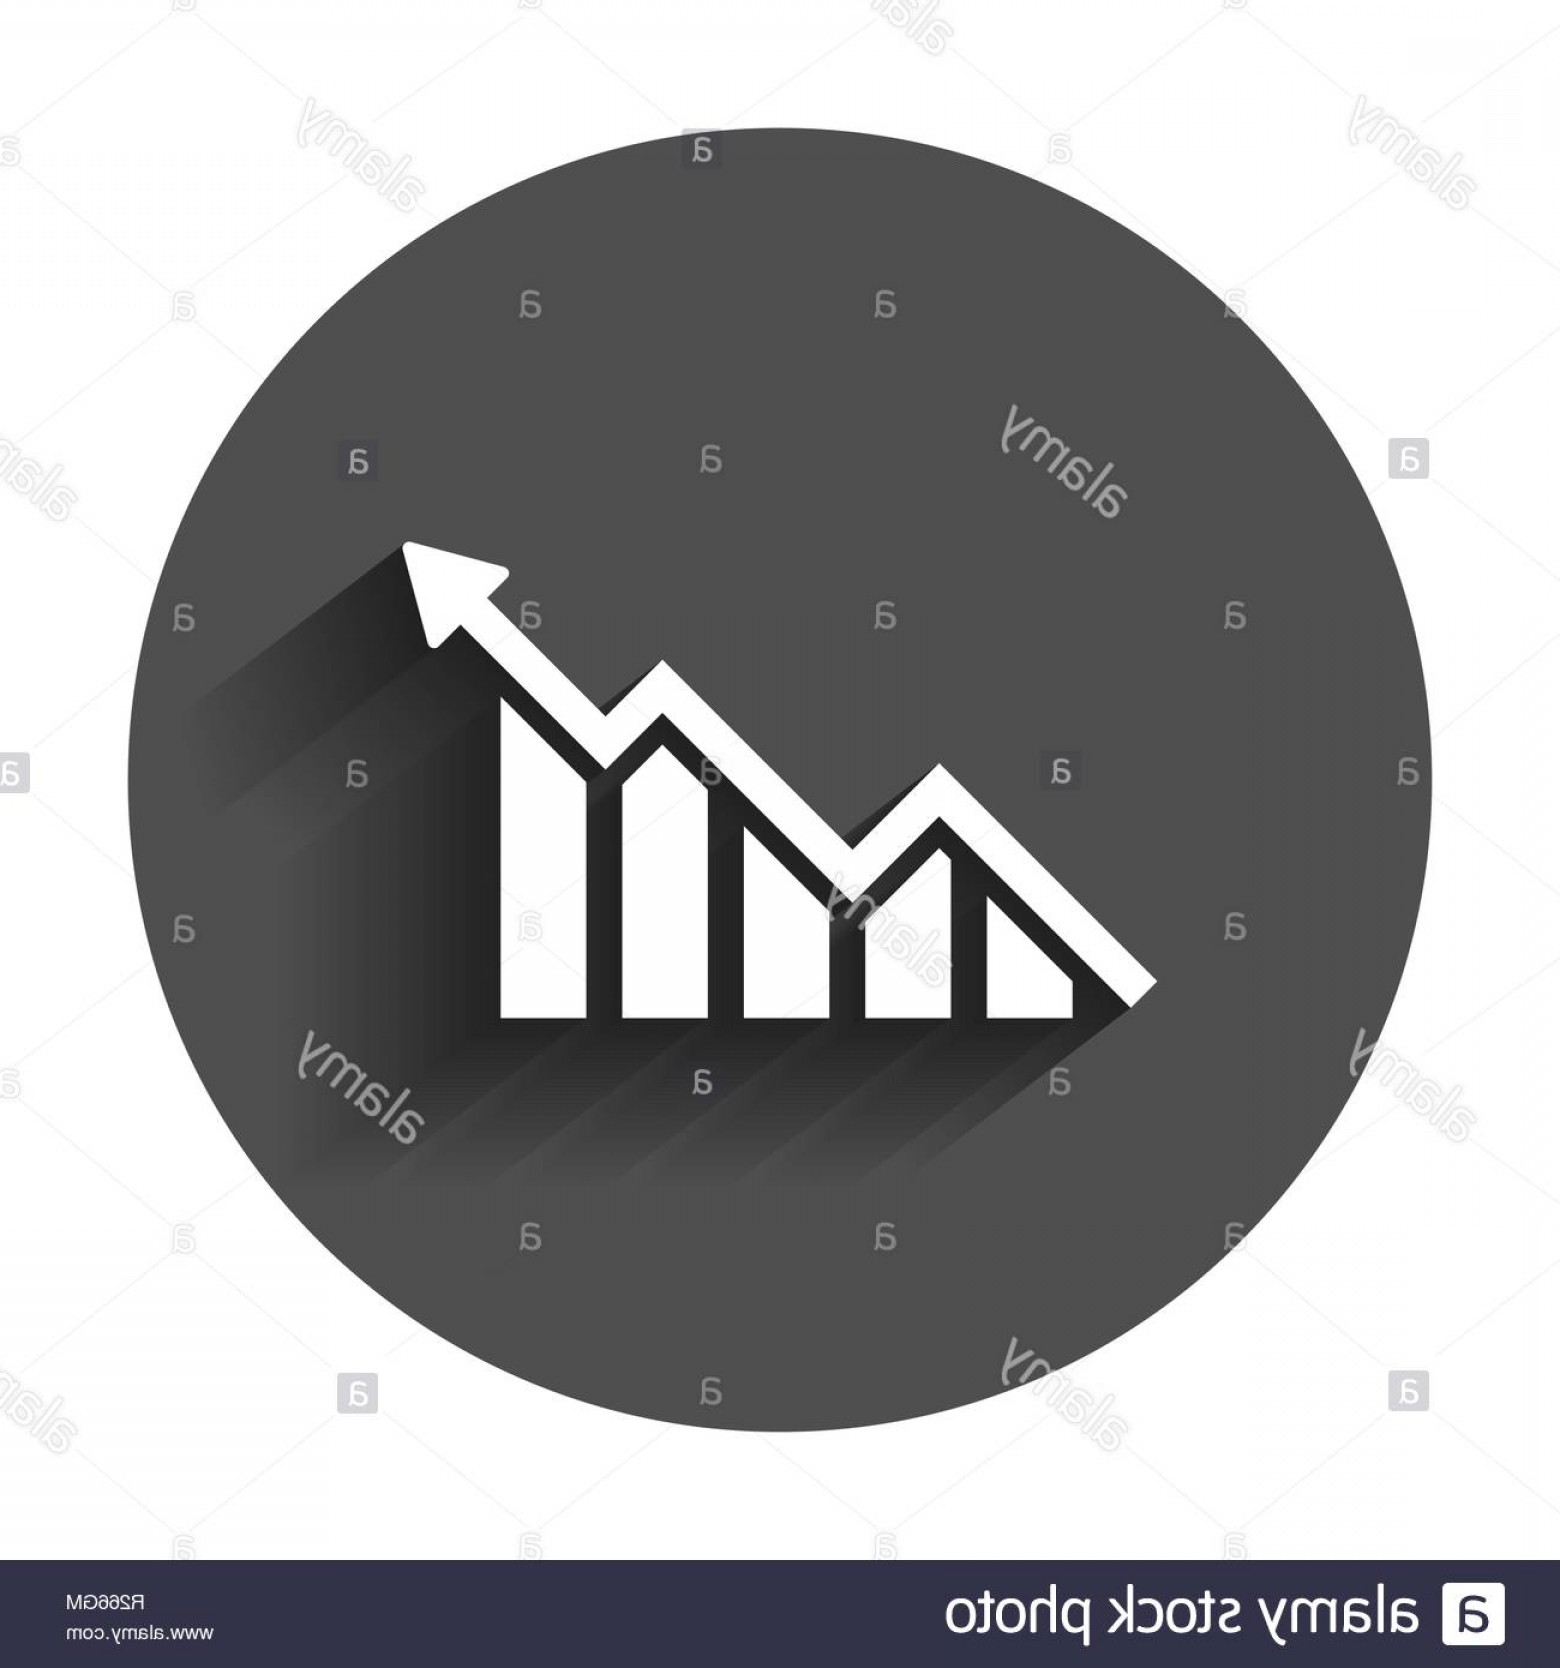 Bar Graph Icon Vector: Growing Bar Graph Icon In Flat Style Increase Arrow Vector Illustration With Long Shadow Infographic Progress Business Concept Image